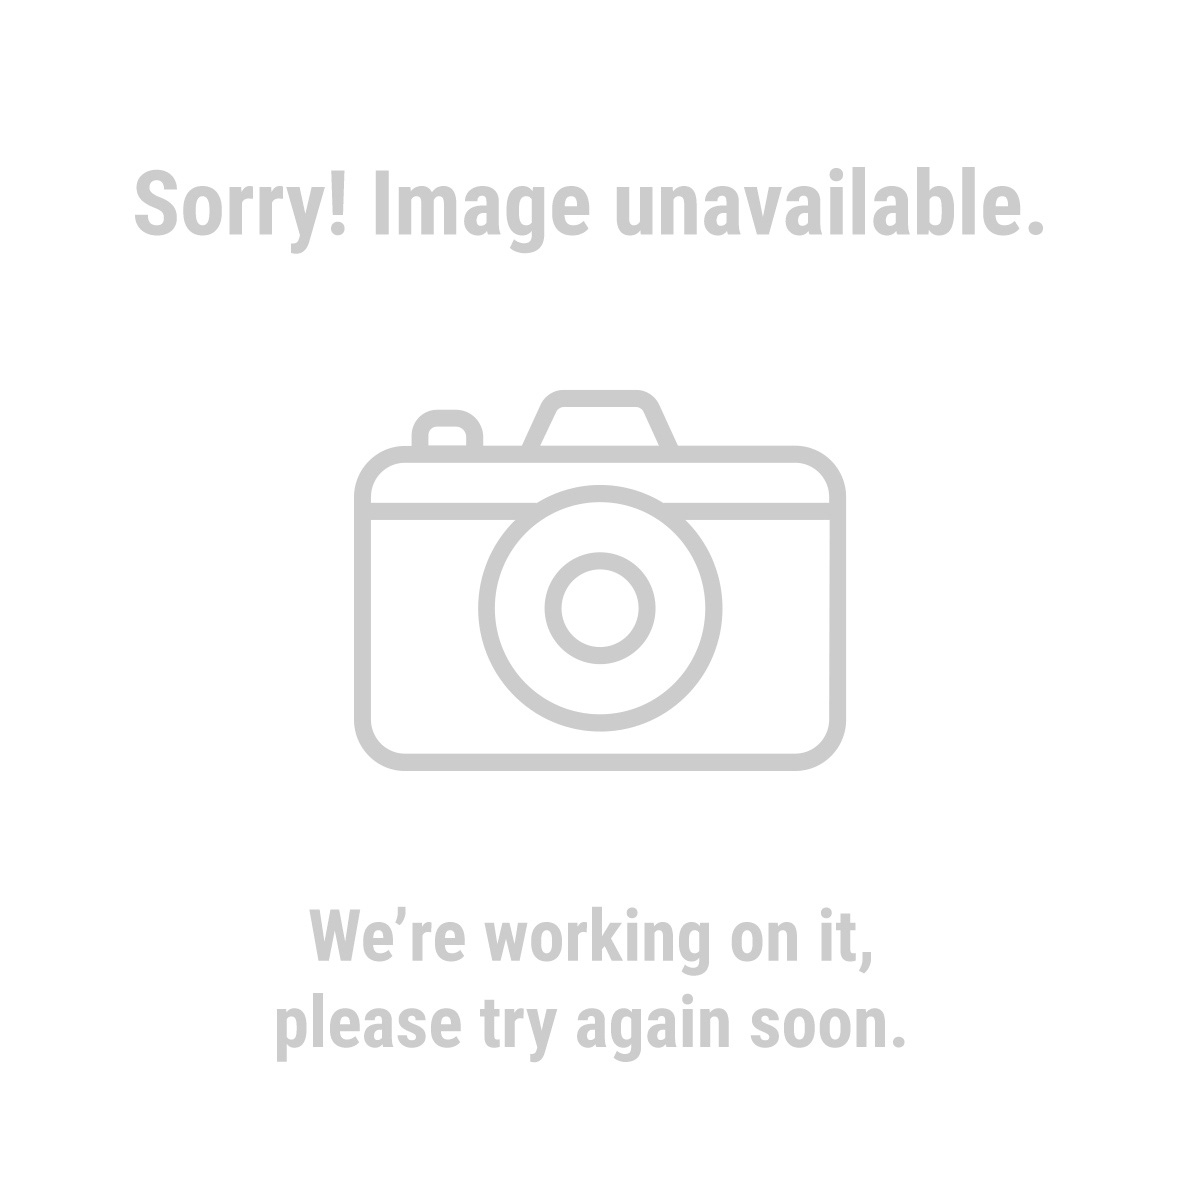 Bunker Hill Security® 62284 Color Security System with Night Vision